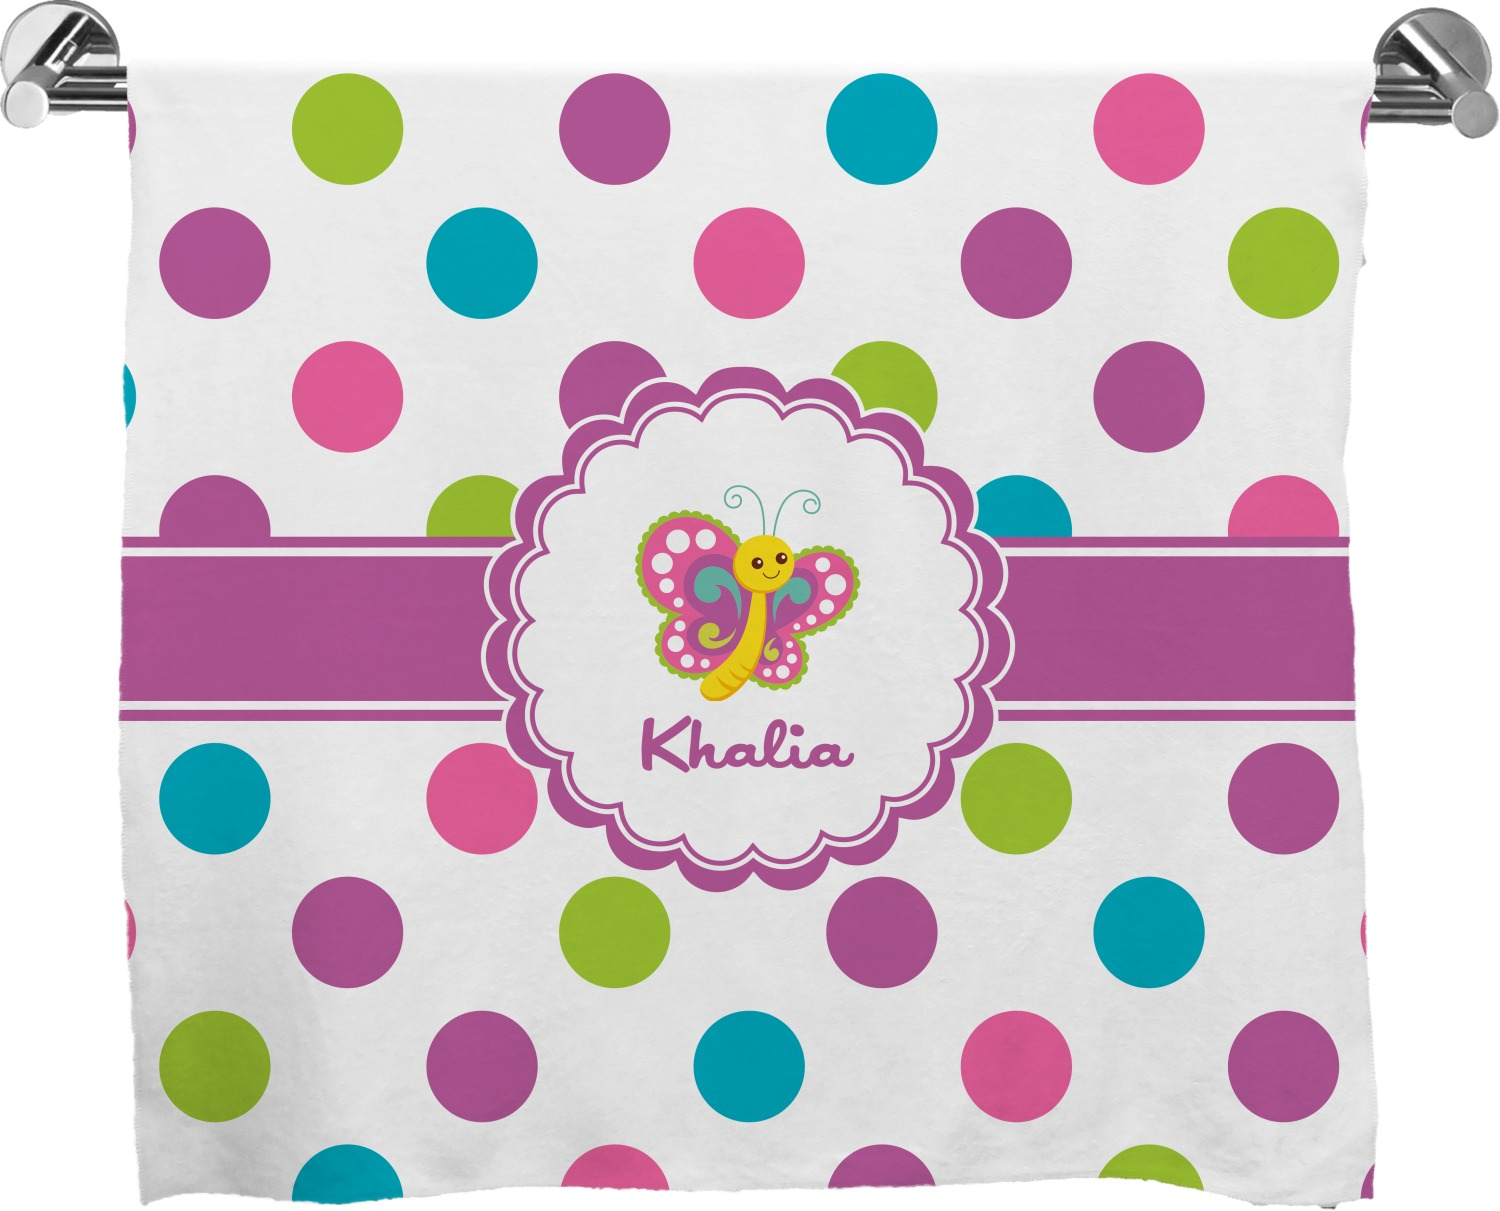 Polka Dot Erfly Full Print Bath Towel Personalized